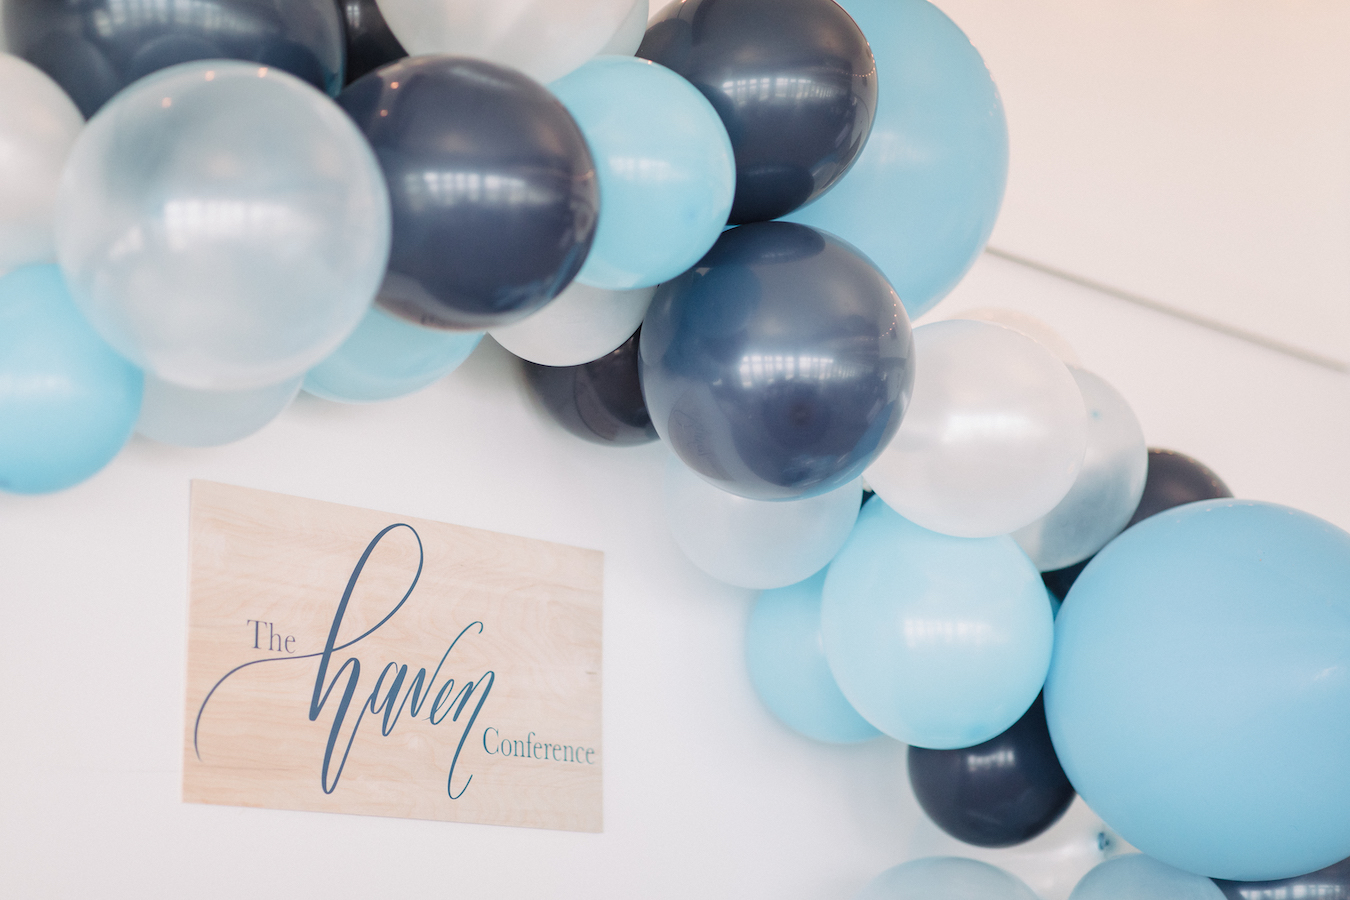 Blue balloon arch with The Haven Conference logo